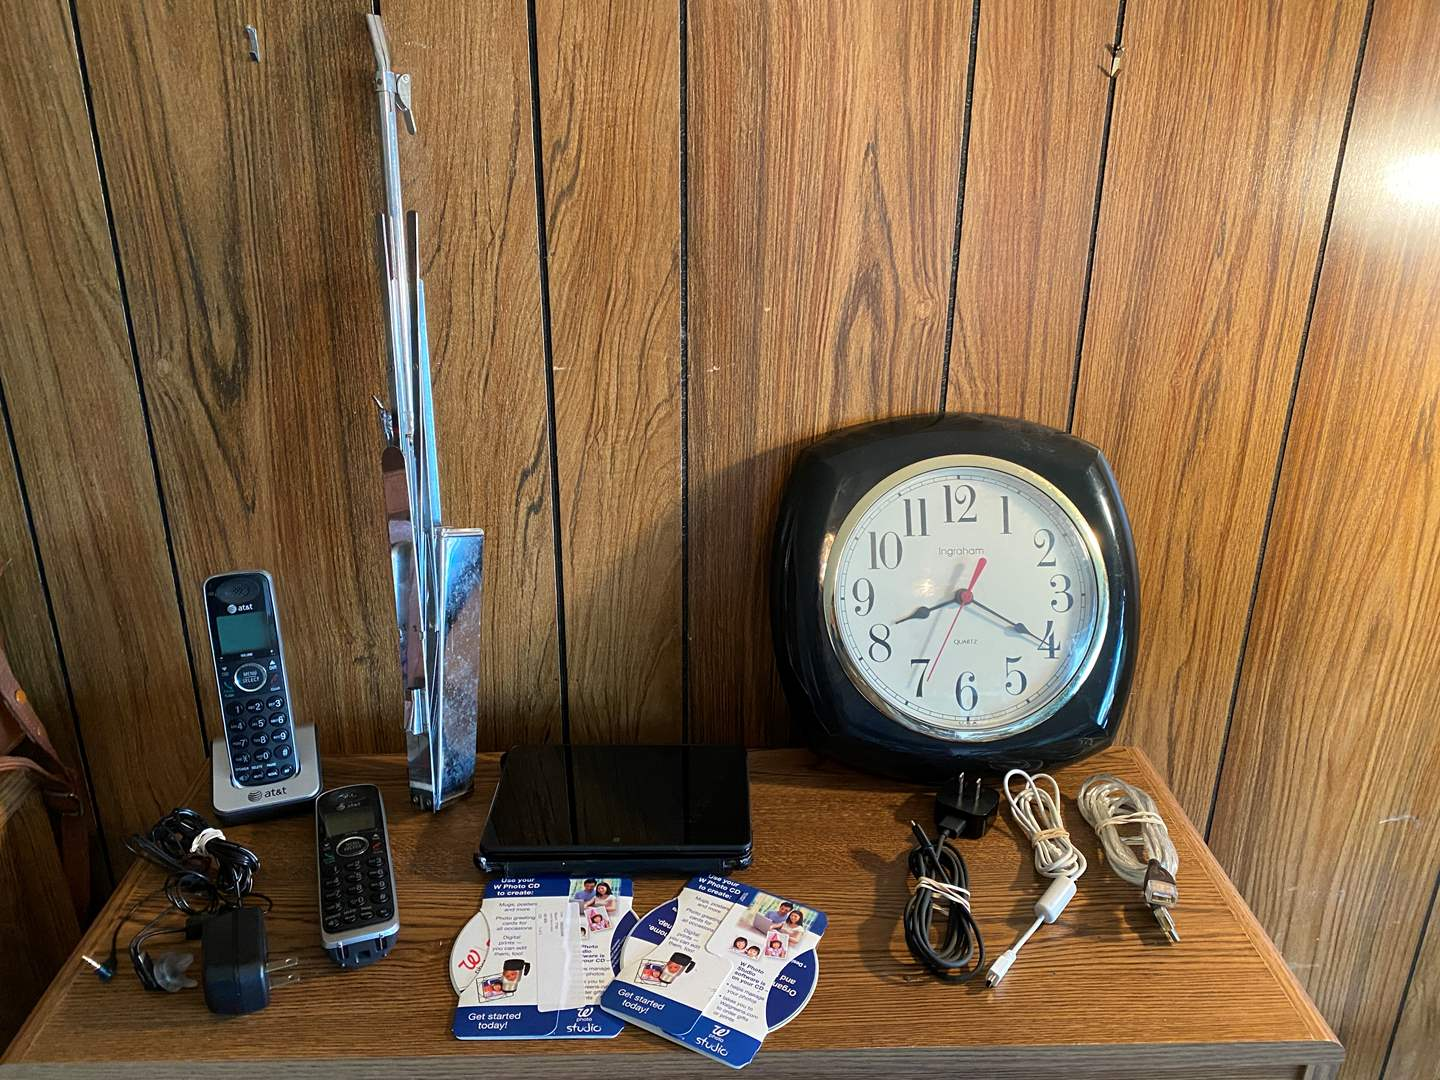 Lot # 213 - Amazon Kindle Fire Model #C9R6QM, AT&T Cordless Phones, Music Stand, Clock & Photo Software (main image)